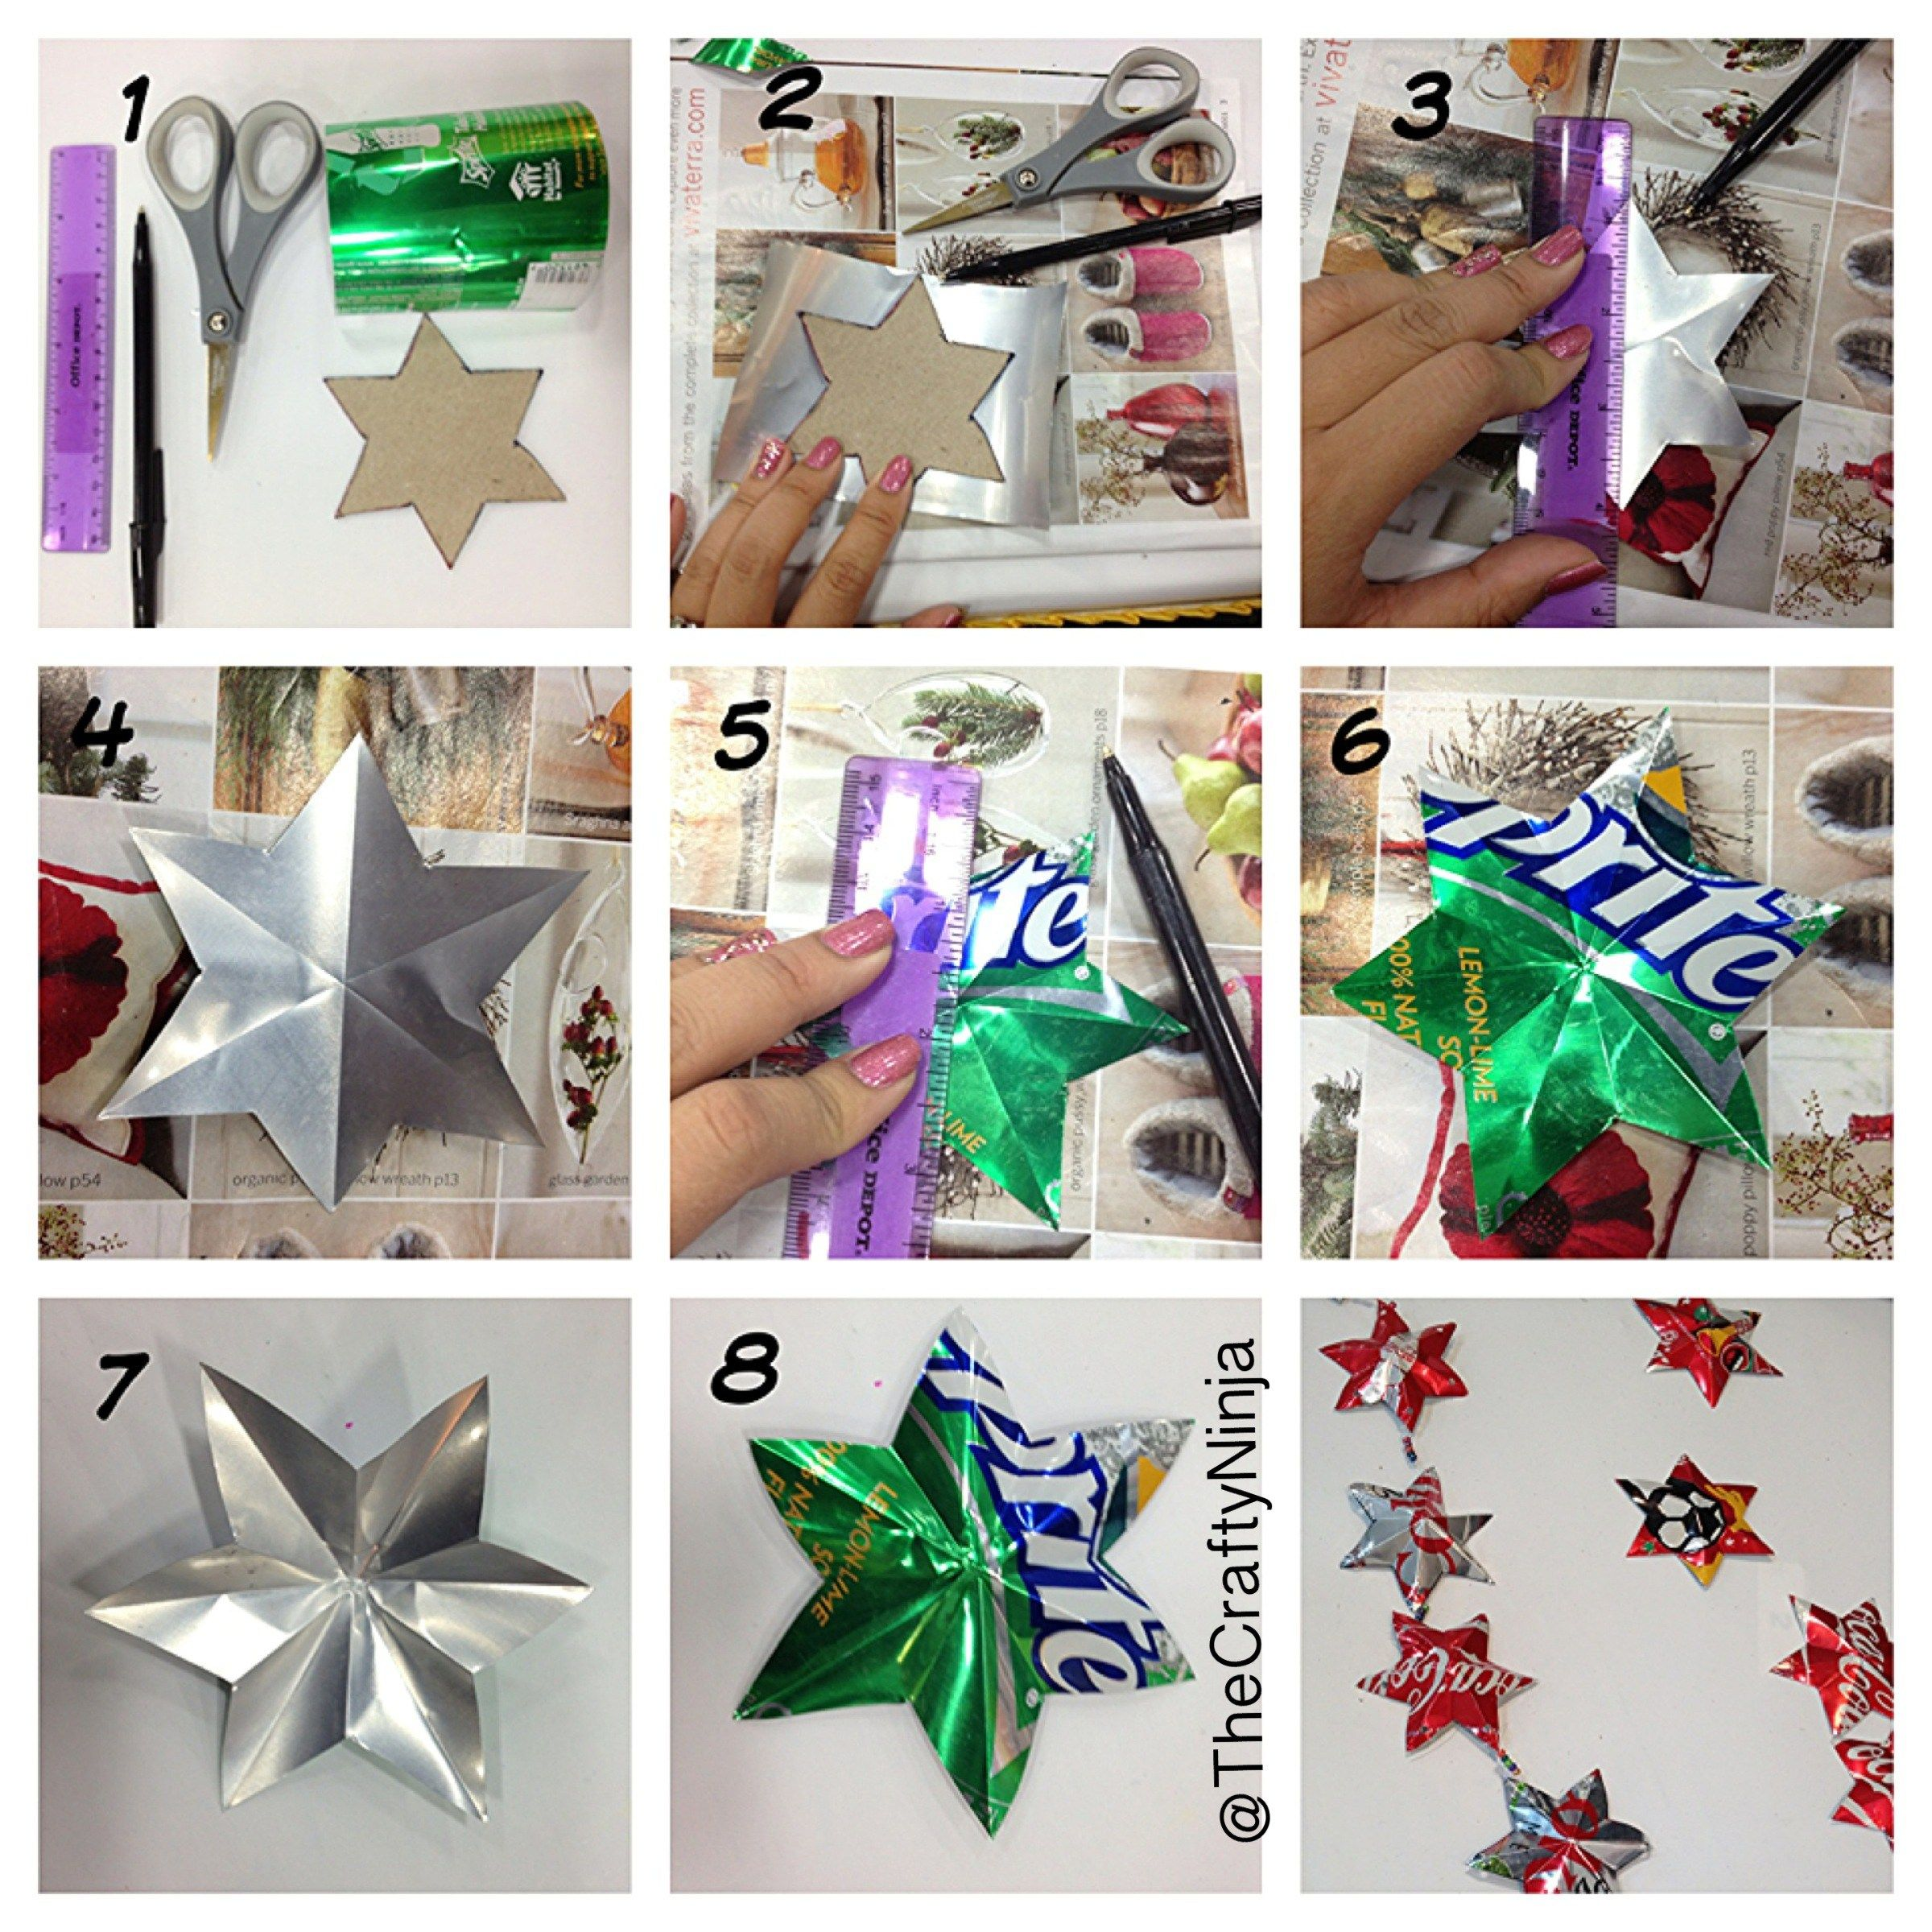 diy-aluminum-star-ornament.jpg (2400×2400)